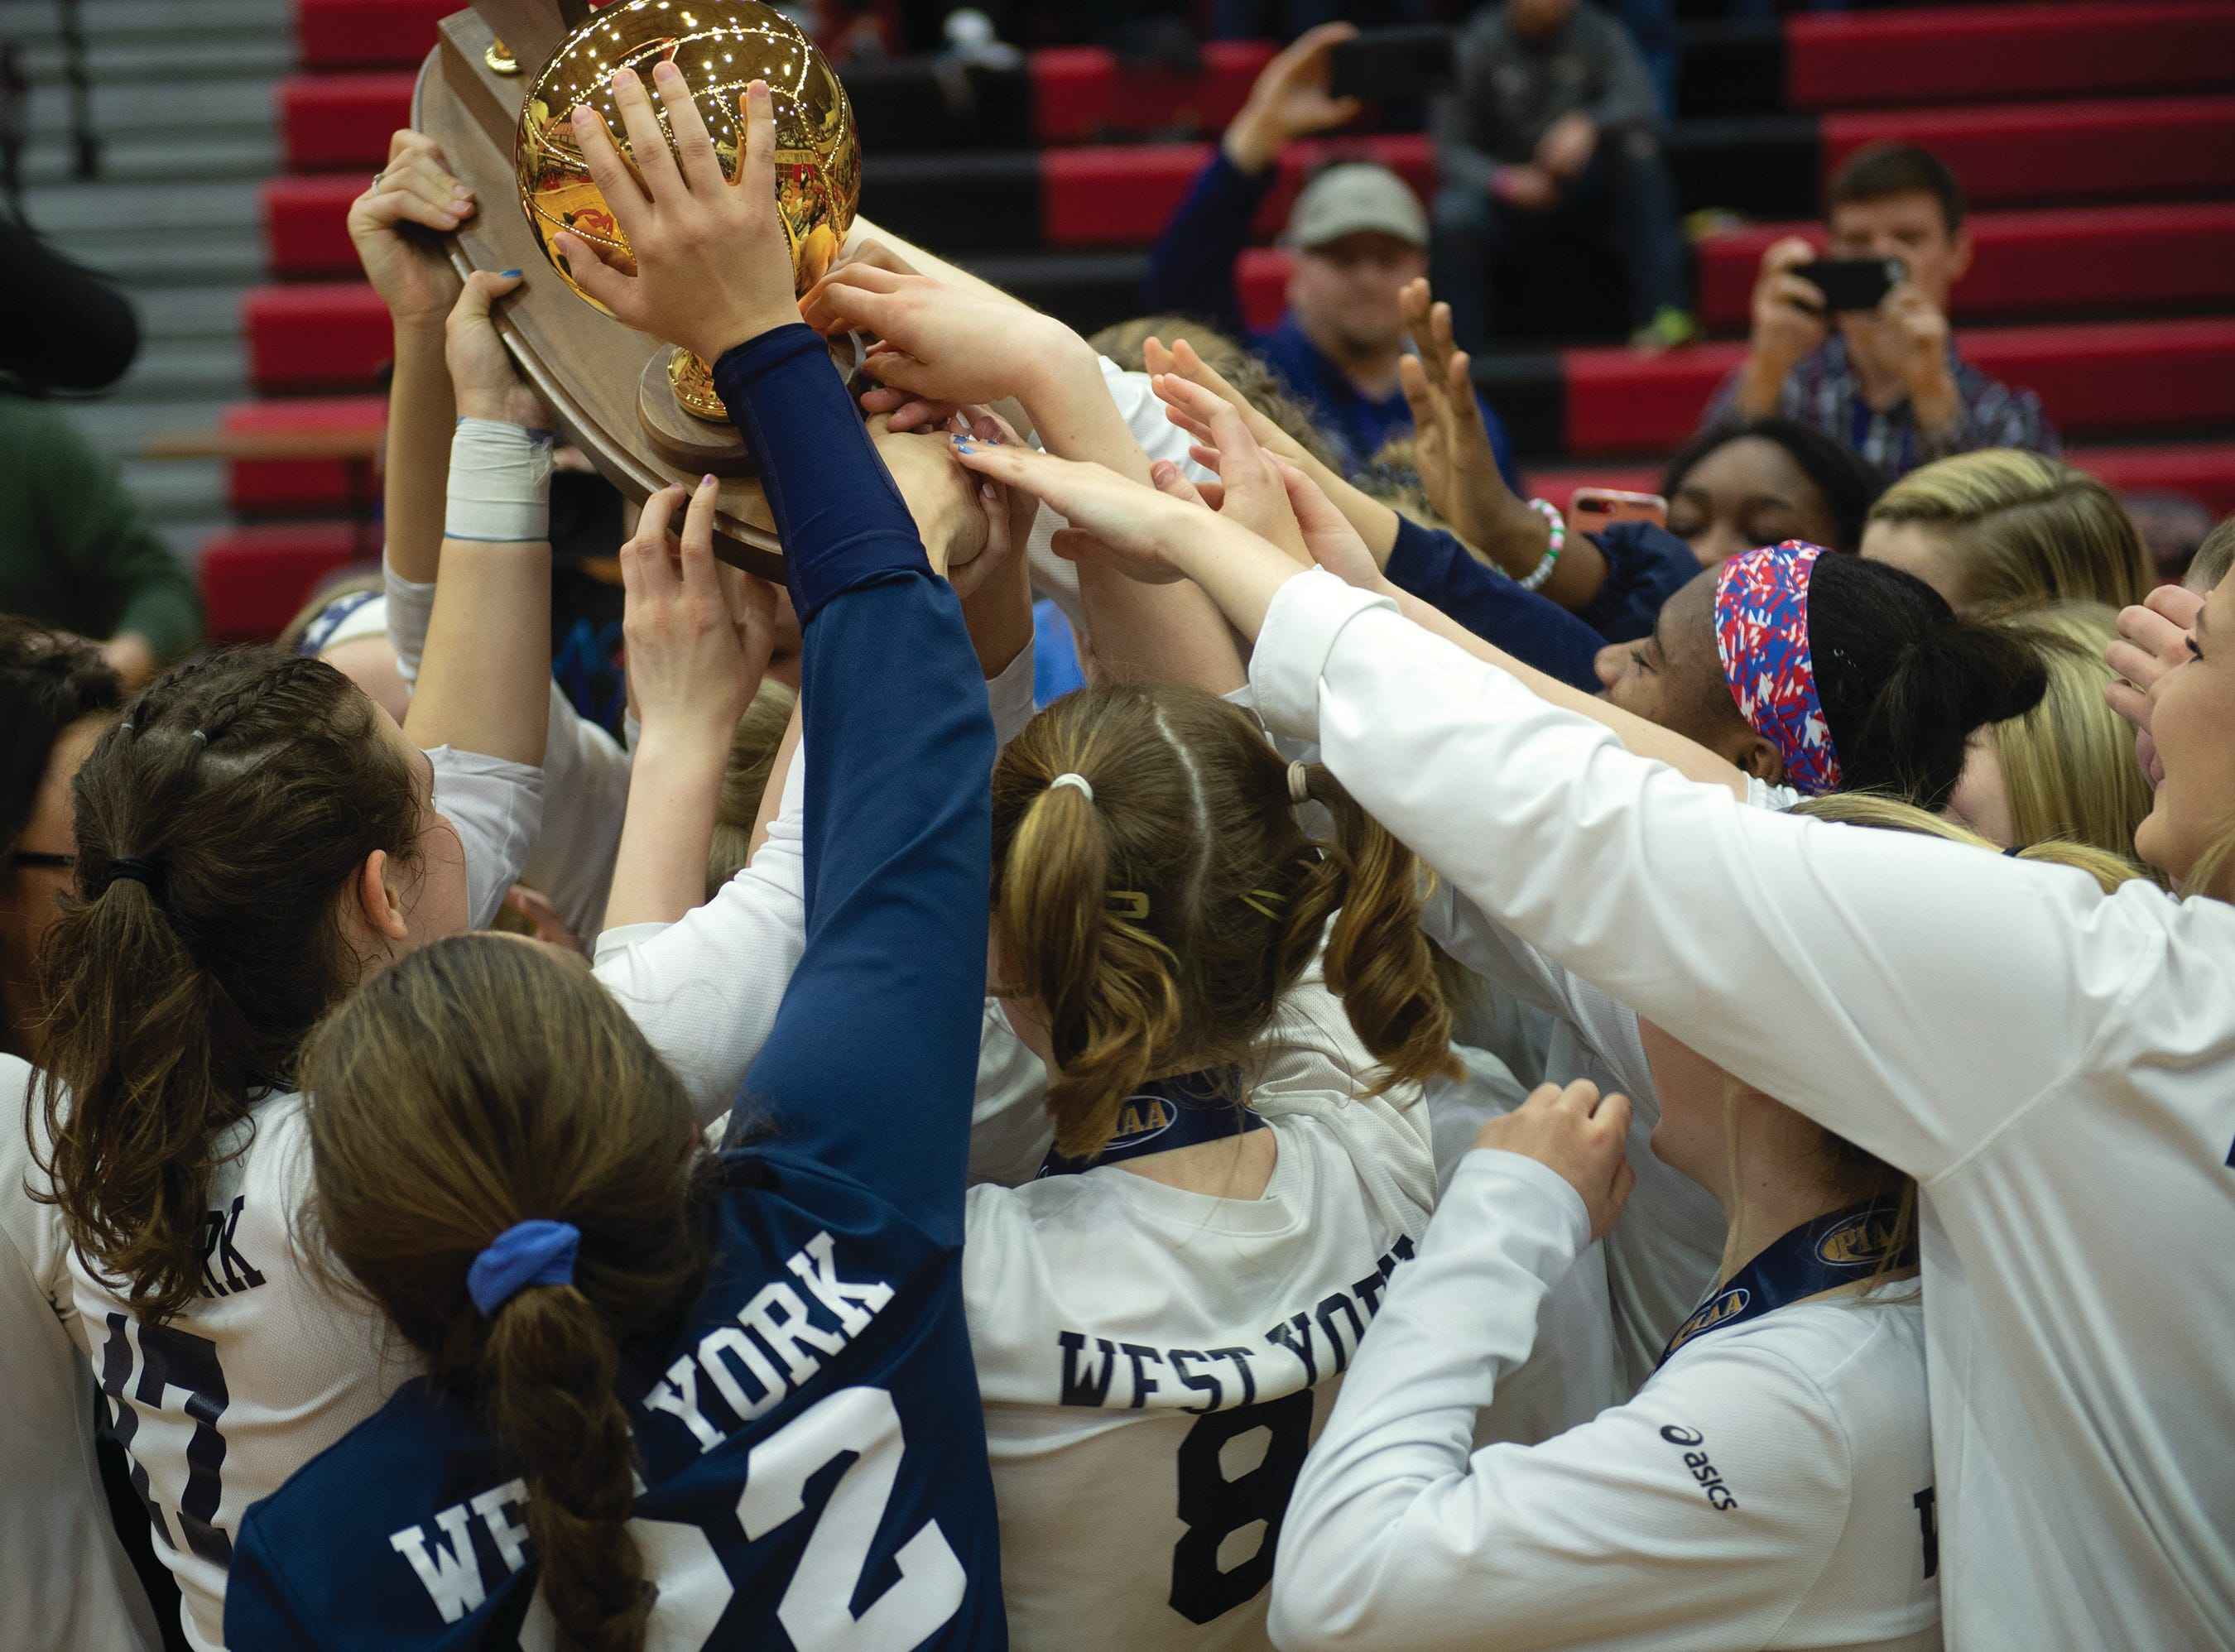 West York players reach for the PIAA Class 3A girls' volleyball trophy after the Bulldogs defeated Warren 3-0 Saturday at Cumberland Valley High School.